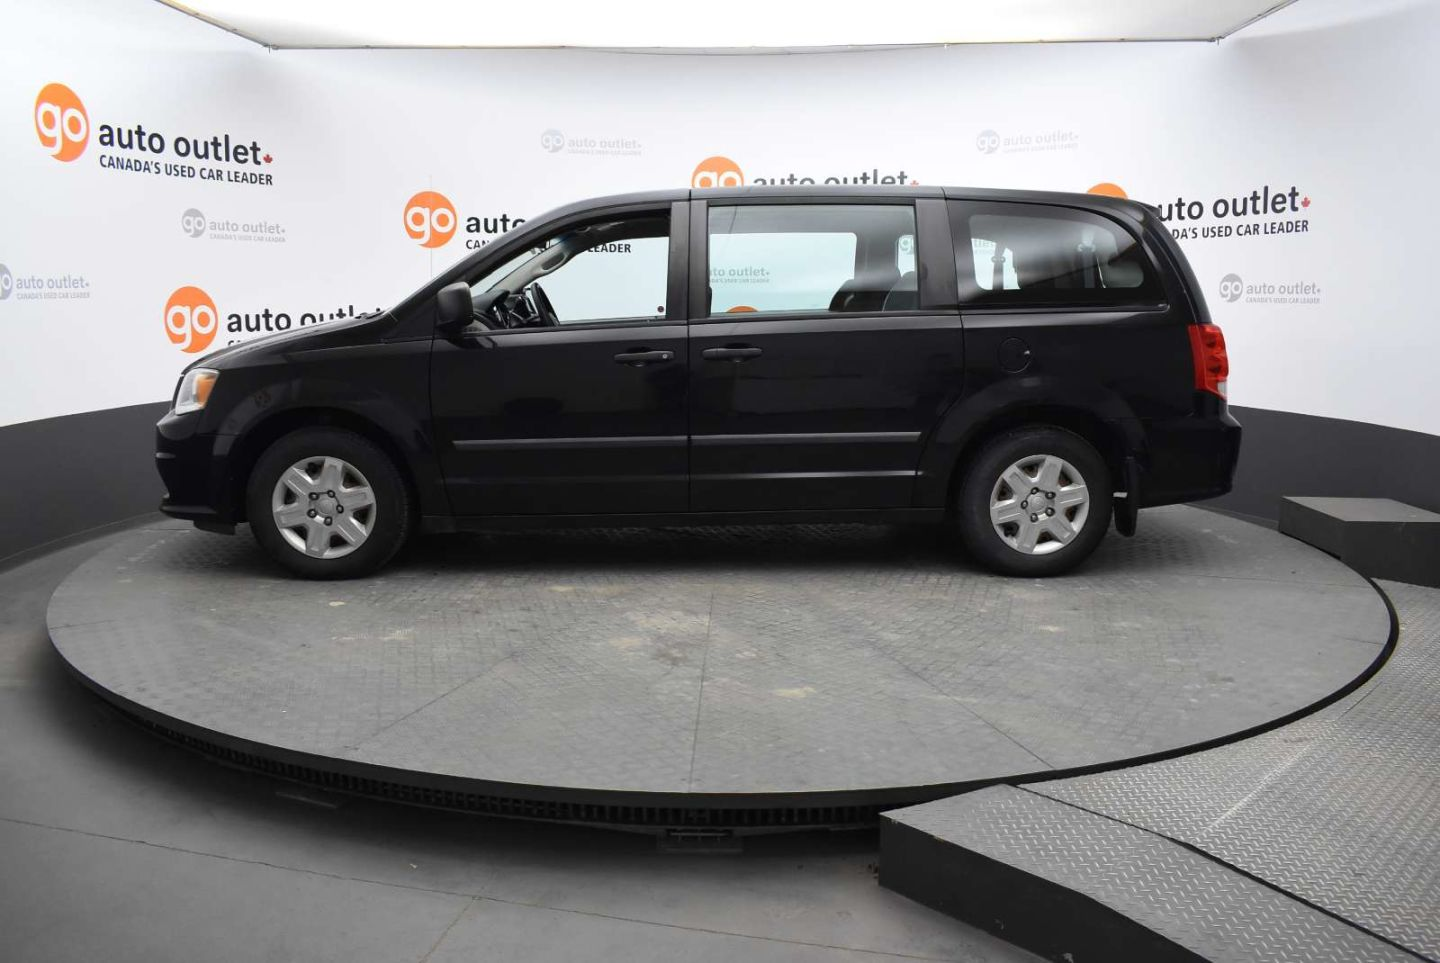 2012 Dodge Grand Caravan SE for sale in Leduc, Alberta